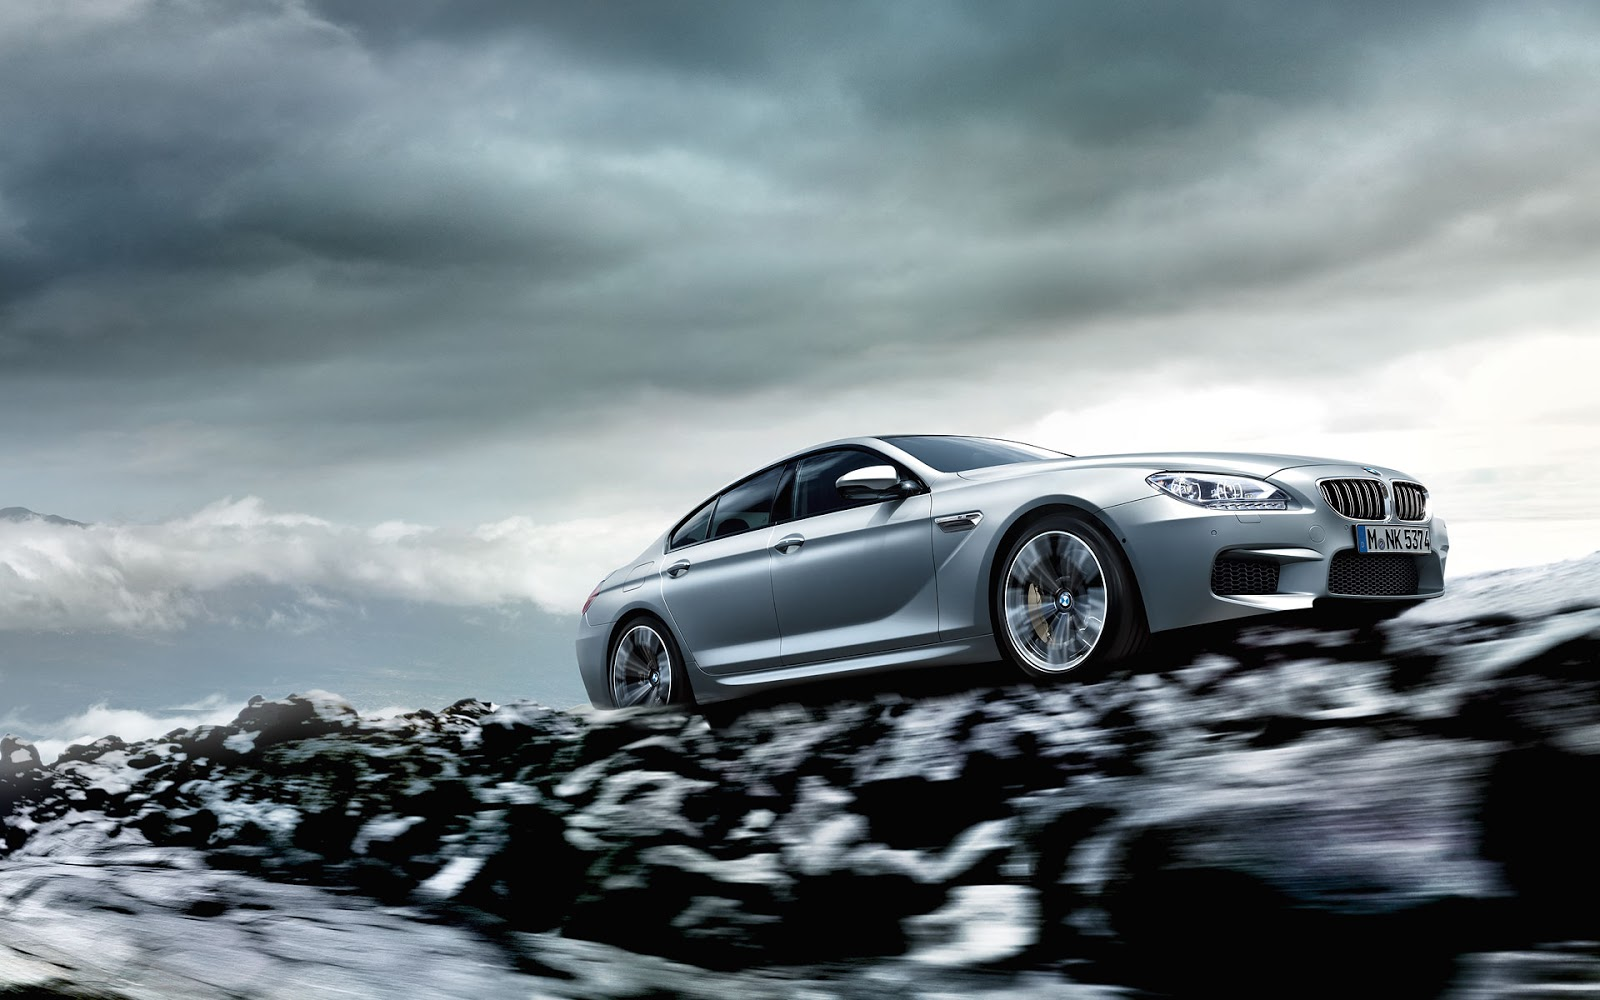 wallpapers hd for mac: BMW M6 Coupe Wallpaper HD